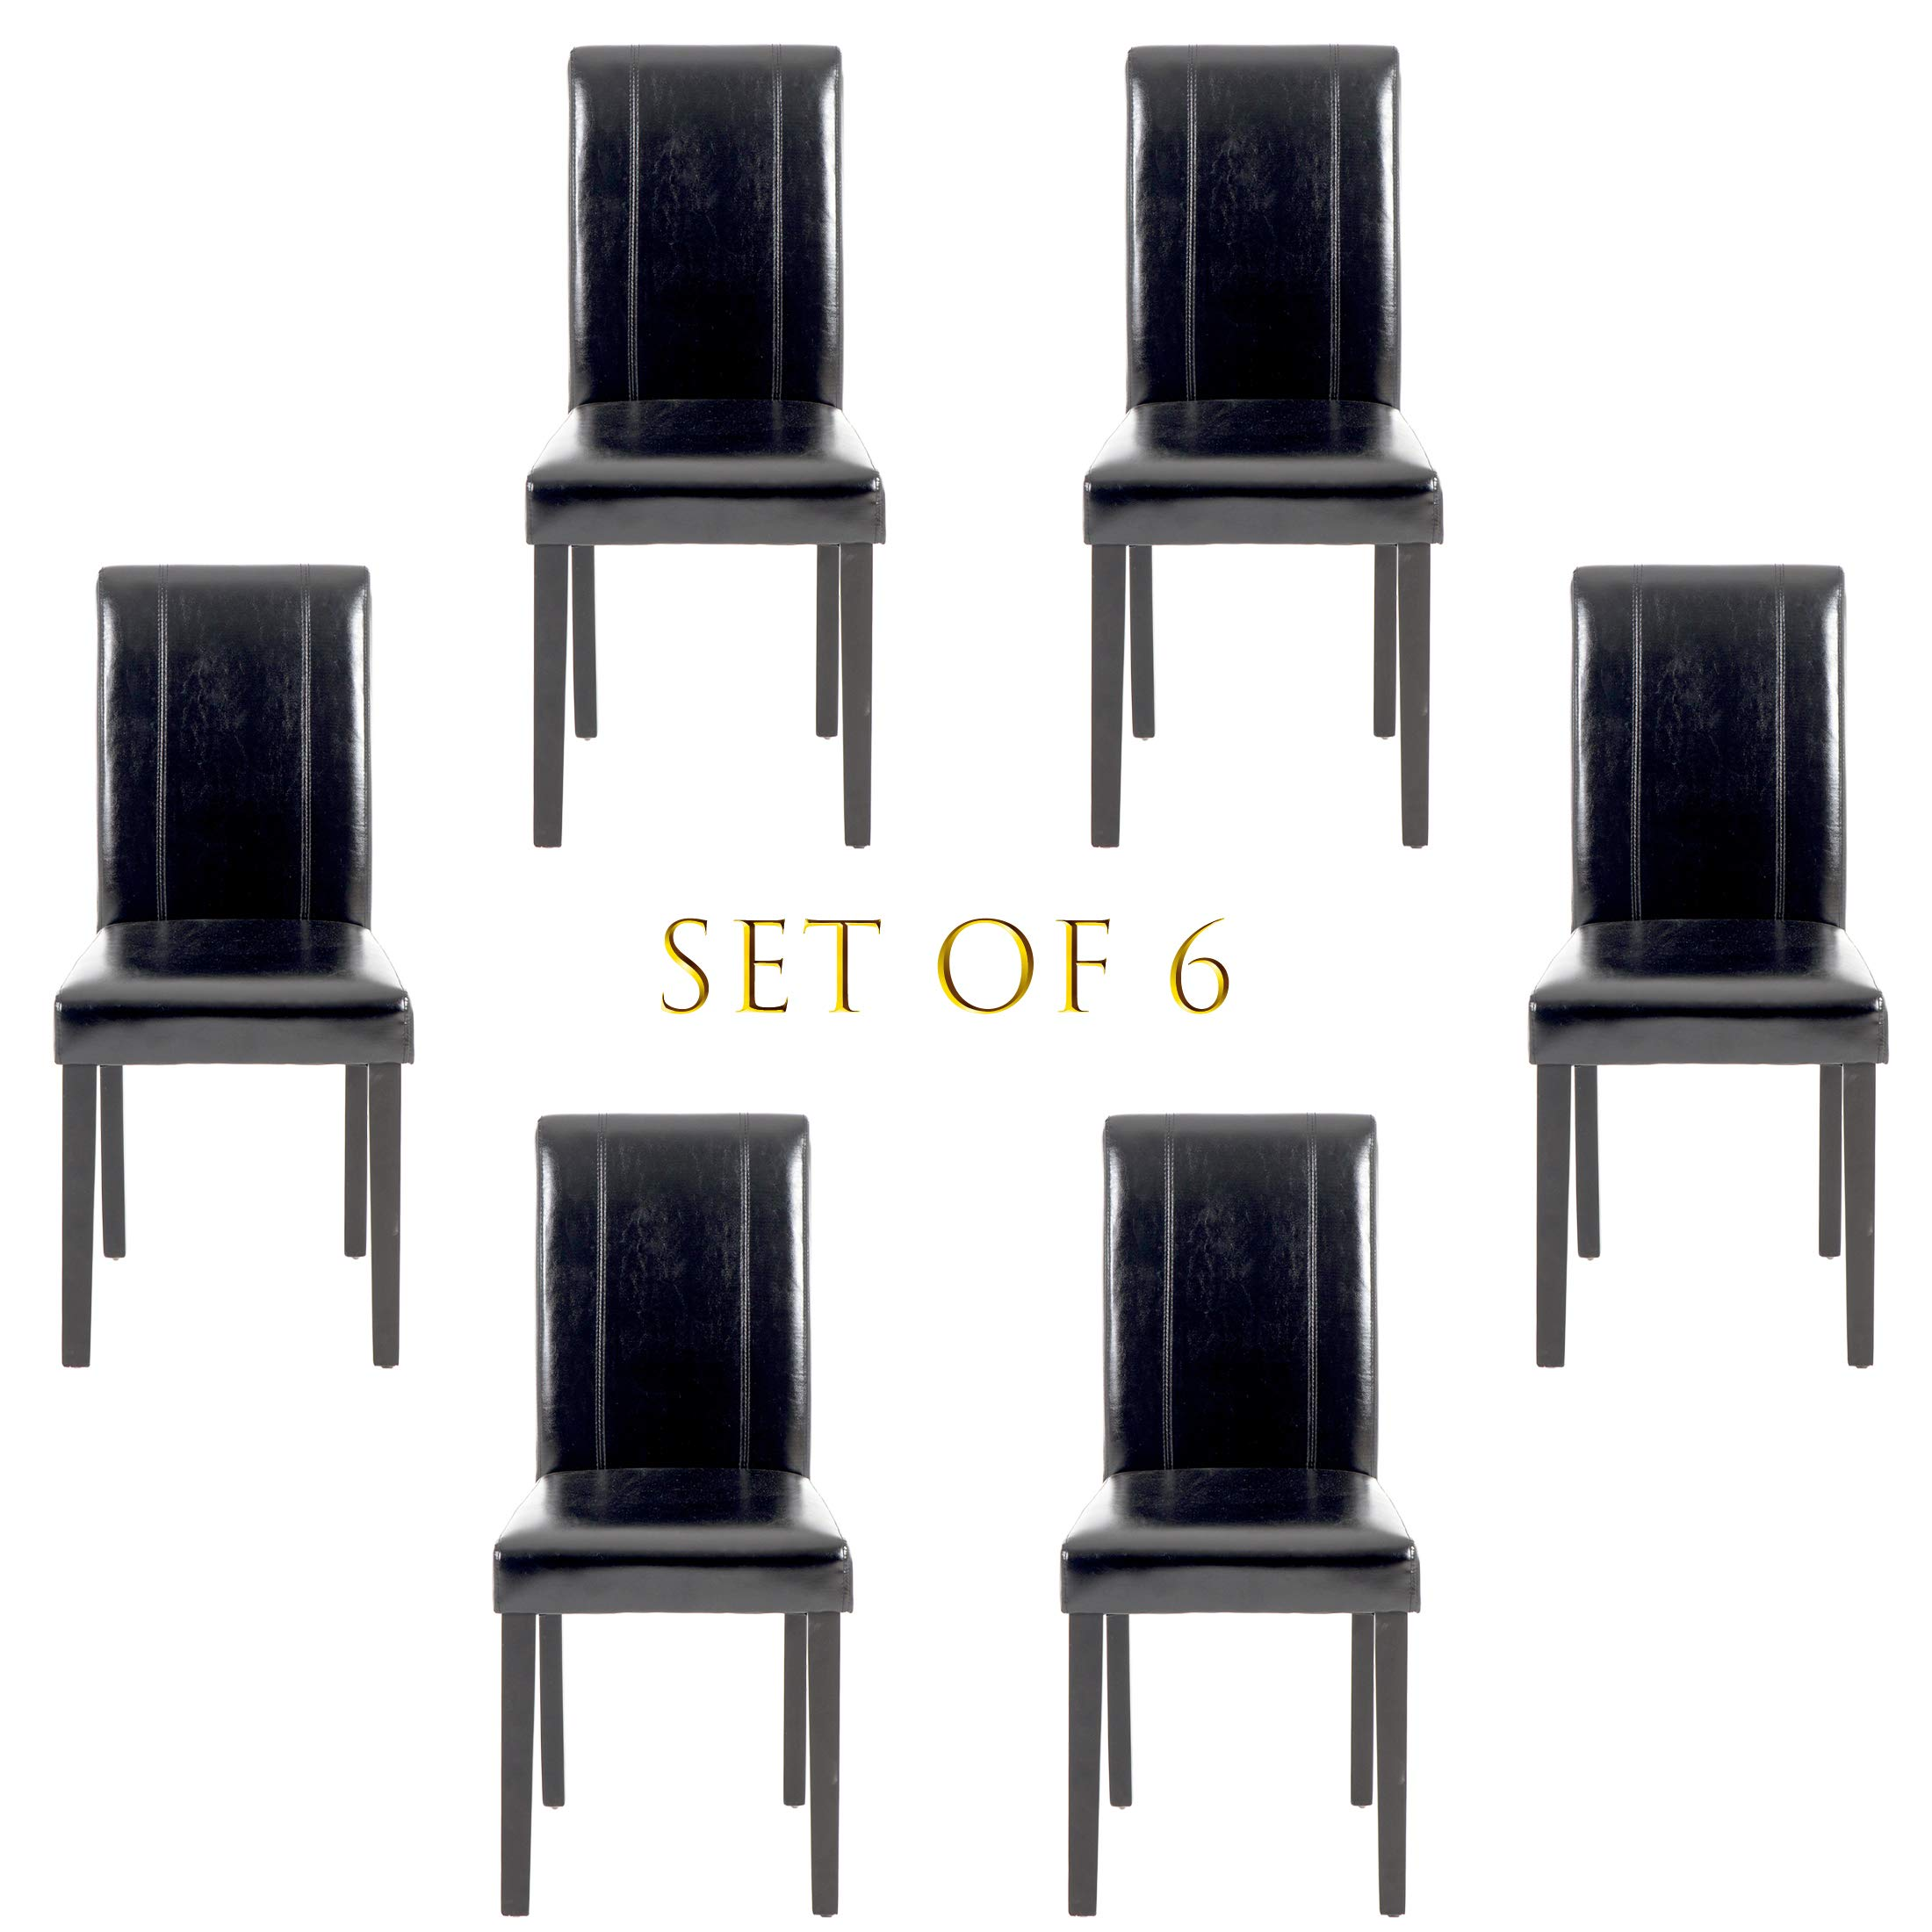 Set of 6 Modern Fabric Upholstered Dining Chairs Elegant Design Dining Room Chairs (Black Set of 6) by THKSBOUGHT